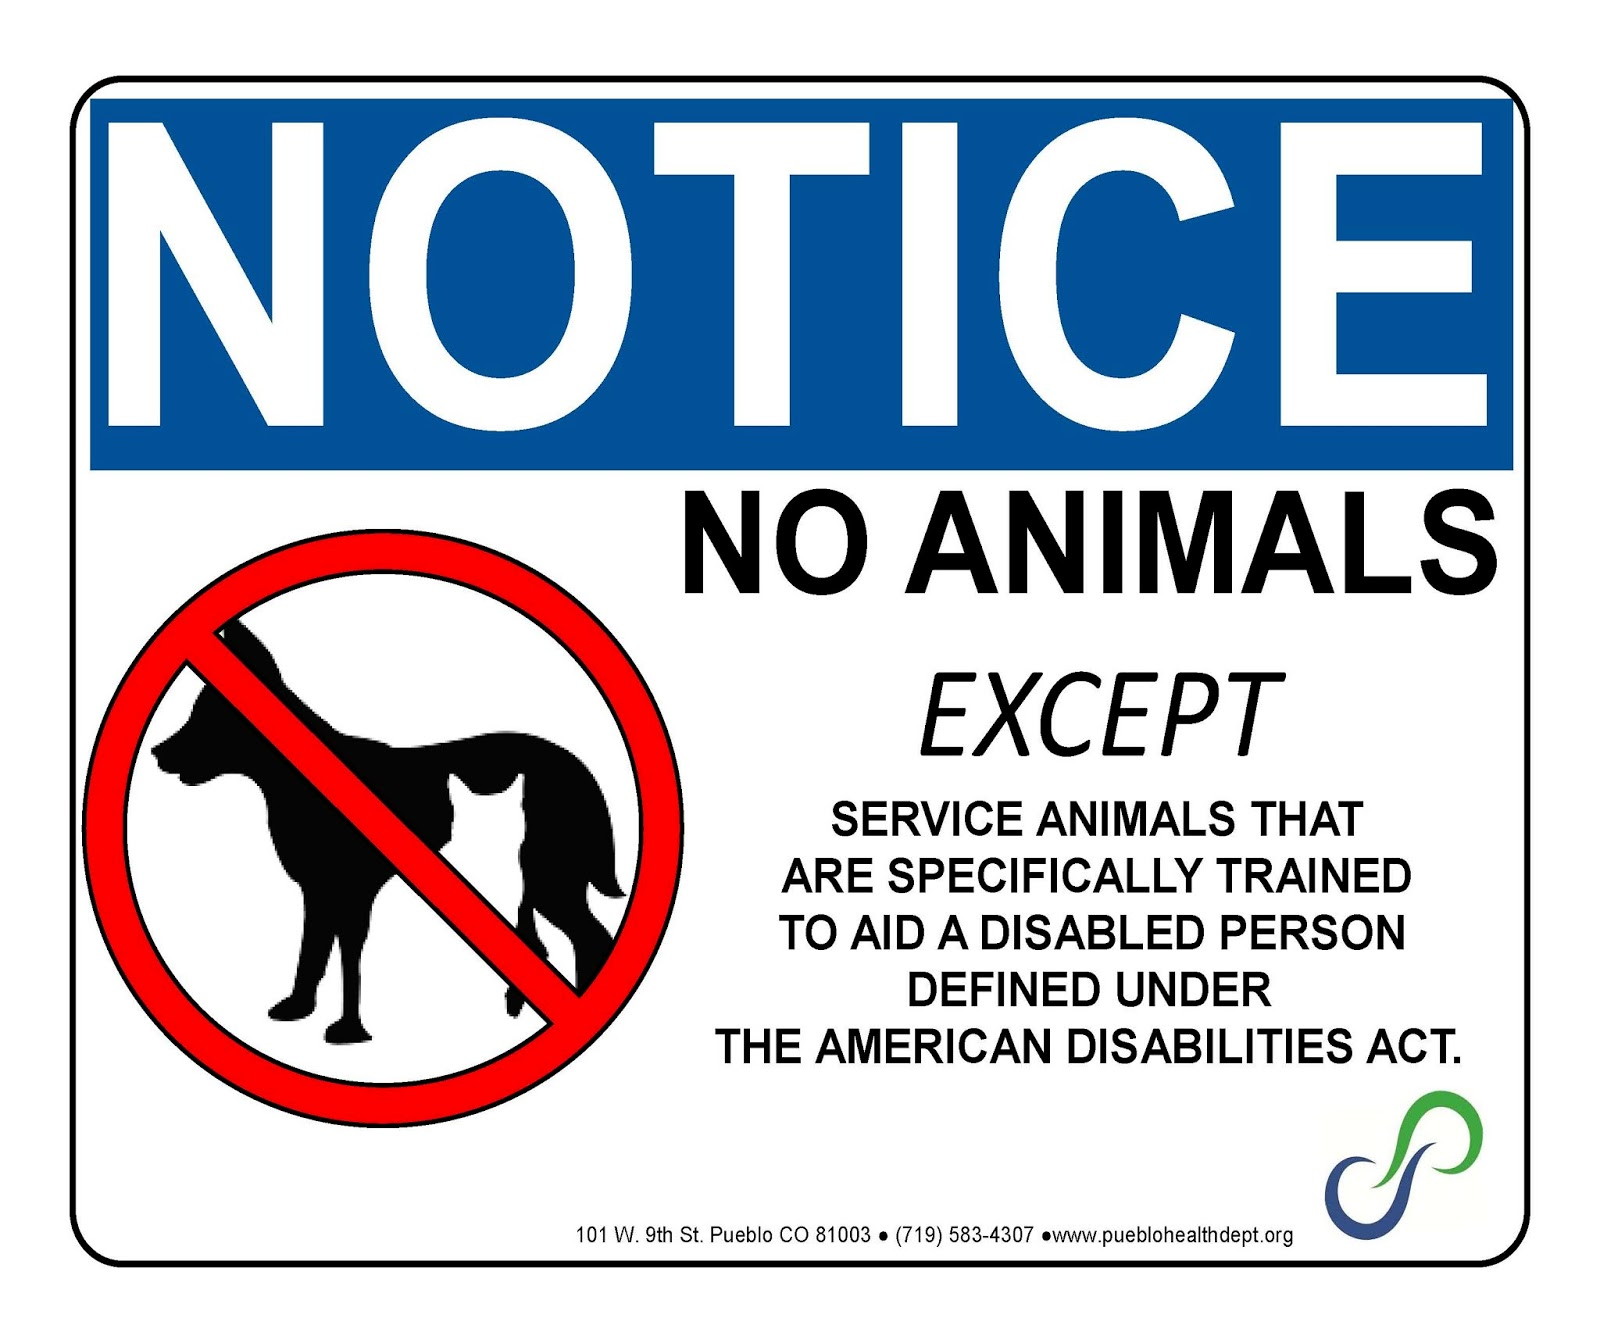 picture about No Pets Allowed Except Service Animals Sign Printable identify The Dish of Pueblo: Assistance Animal